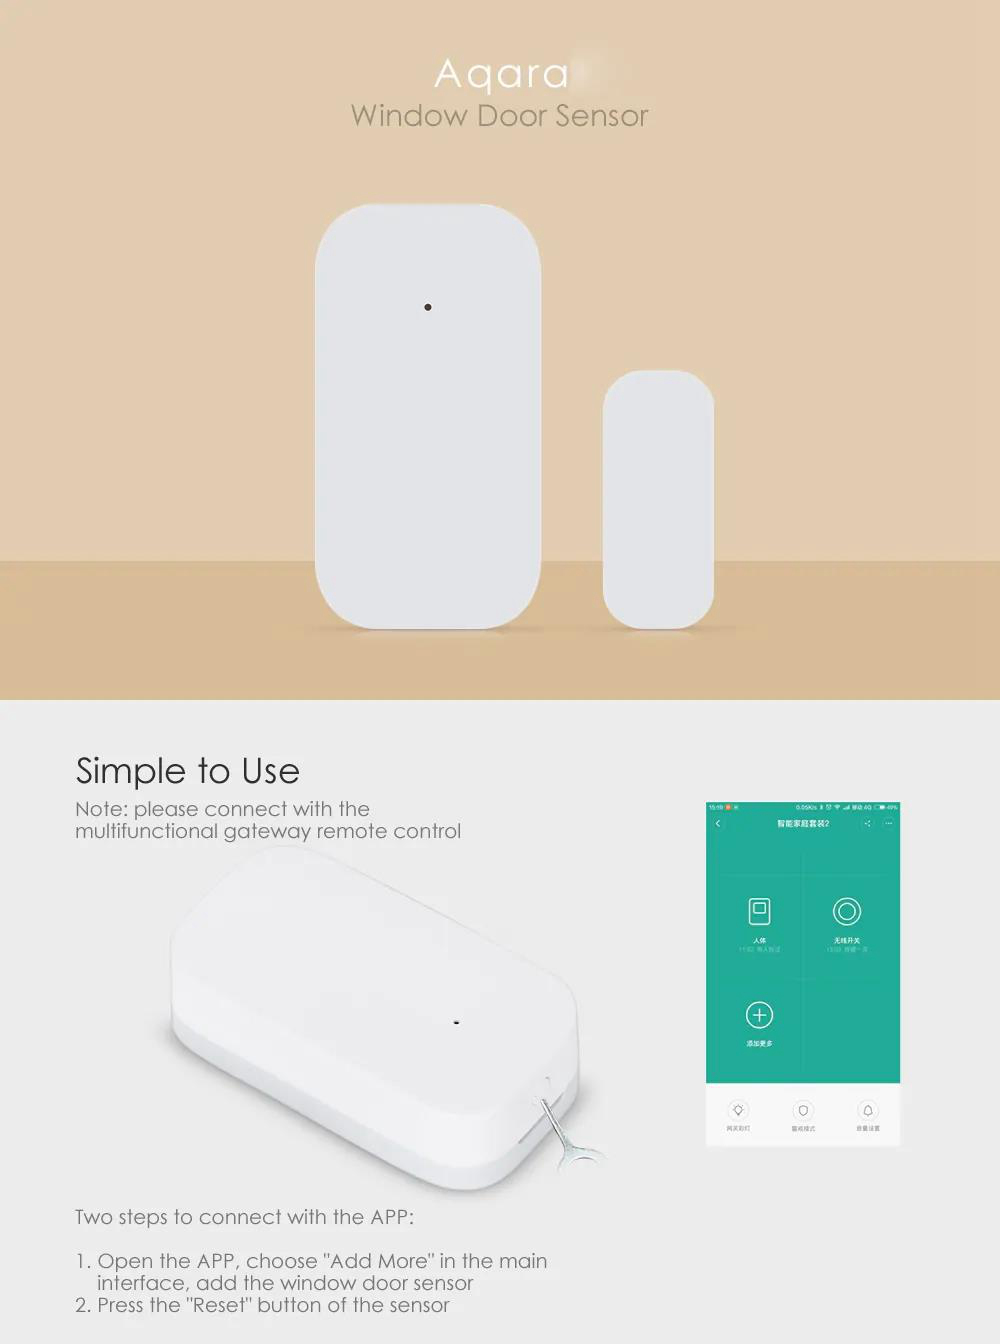 Xiaomi Aqara Smart Window Door Sensor Home Security Equipment (Need to Work together with Aqara Gateway) - White